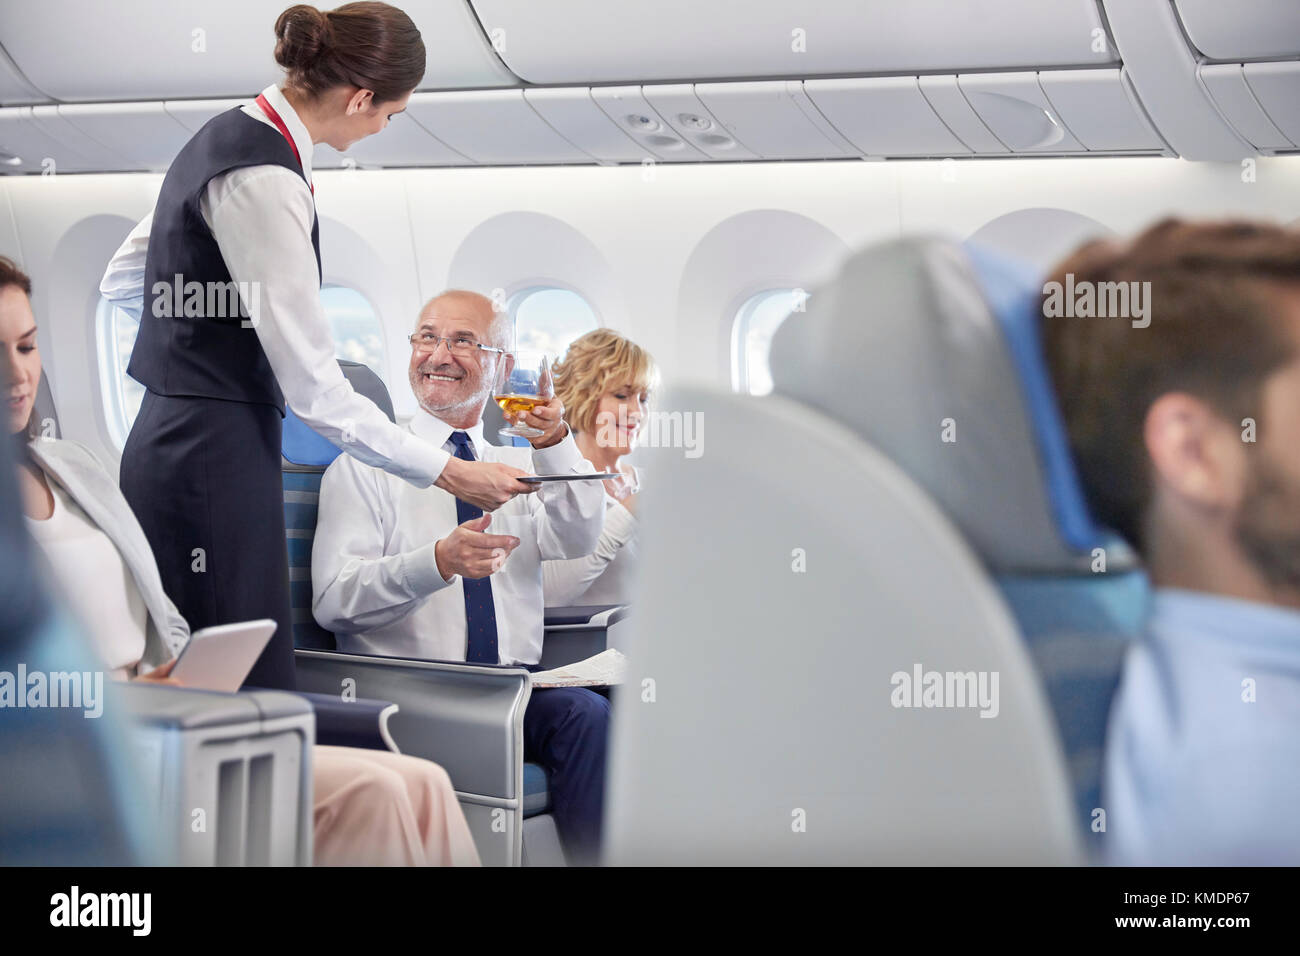 Flight attendant serving whiskey to businessman in first class on airplane - Stock Image